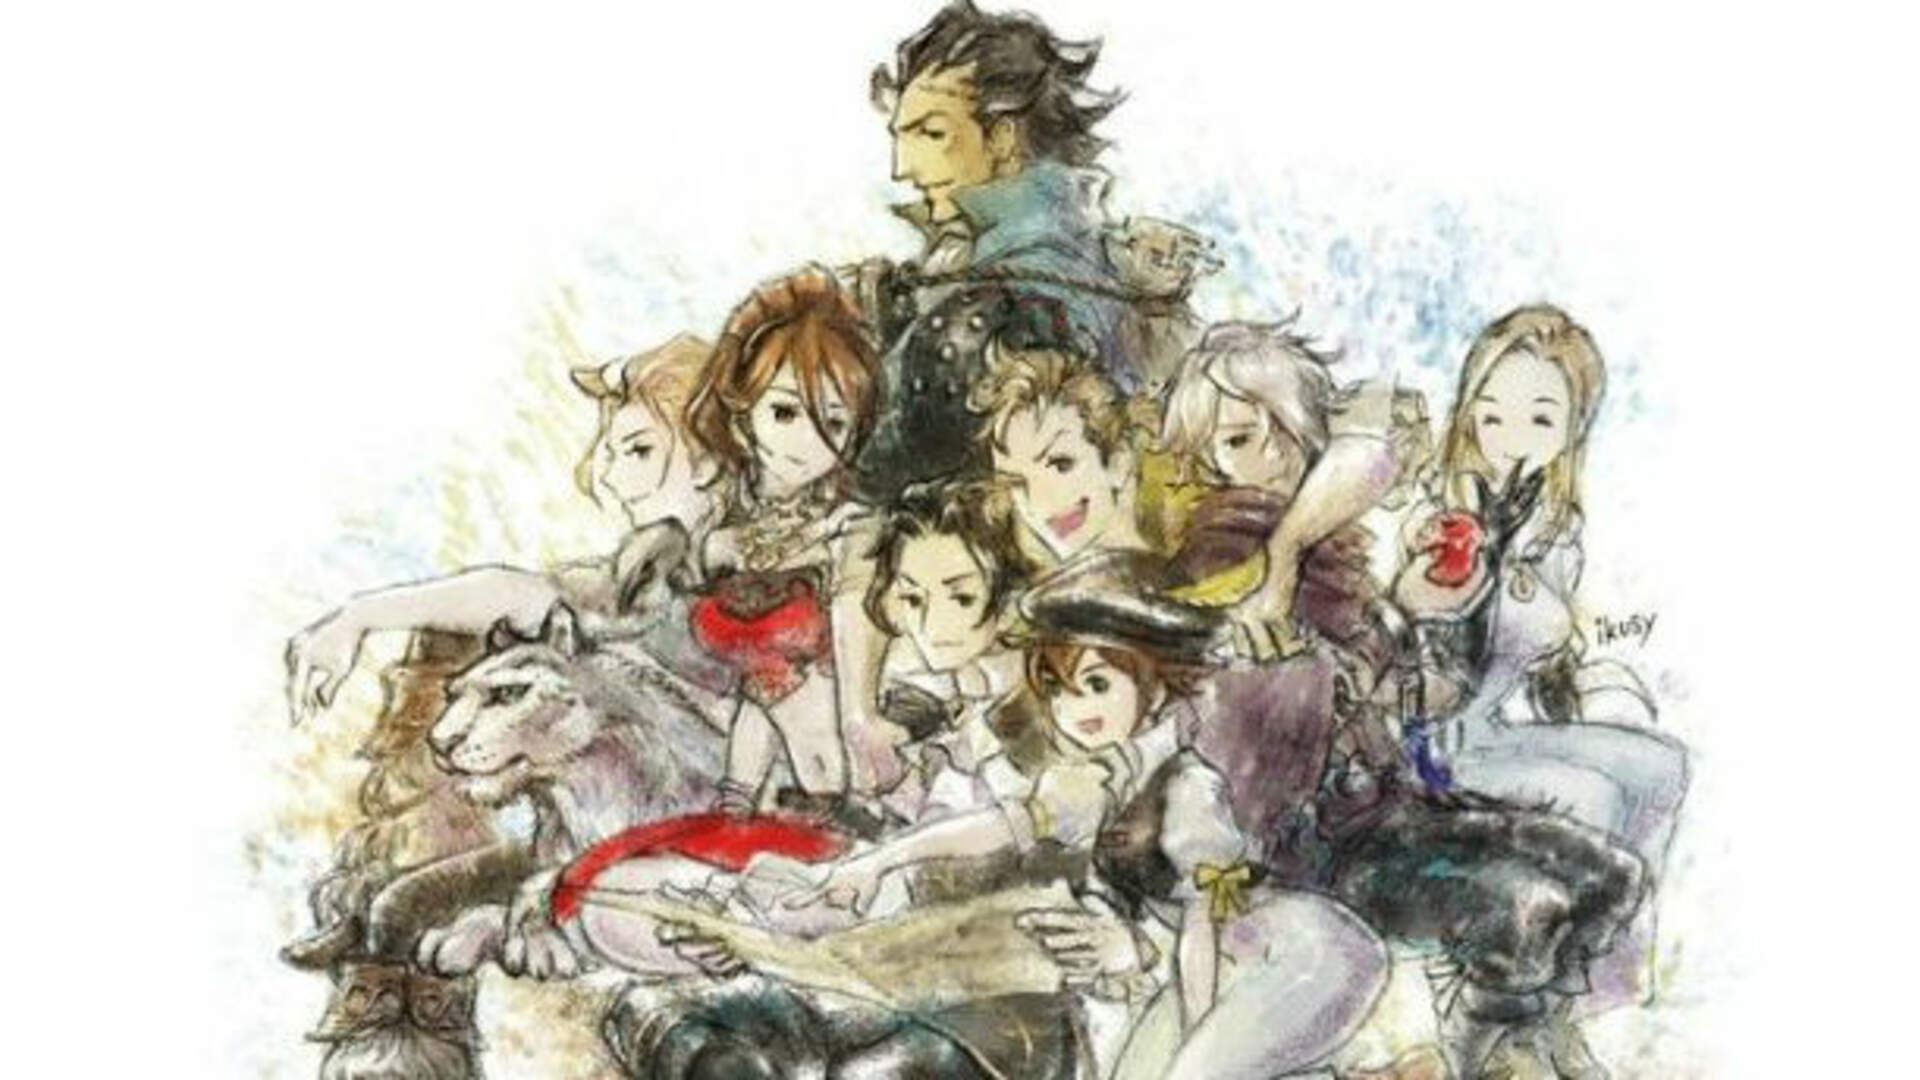 All 8 of Octopath Traveler's Characters Ranked from Worst to Best